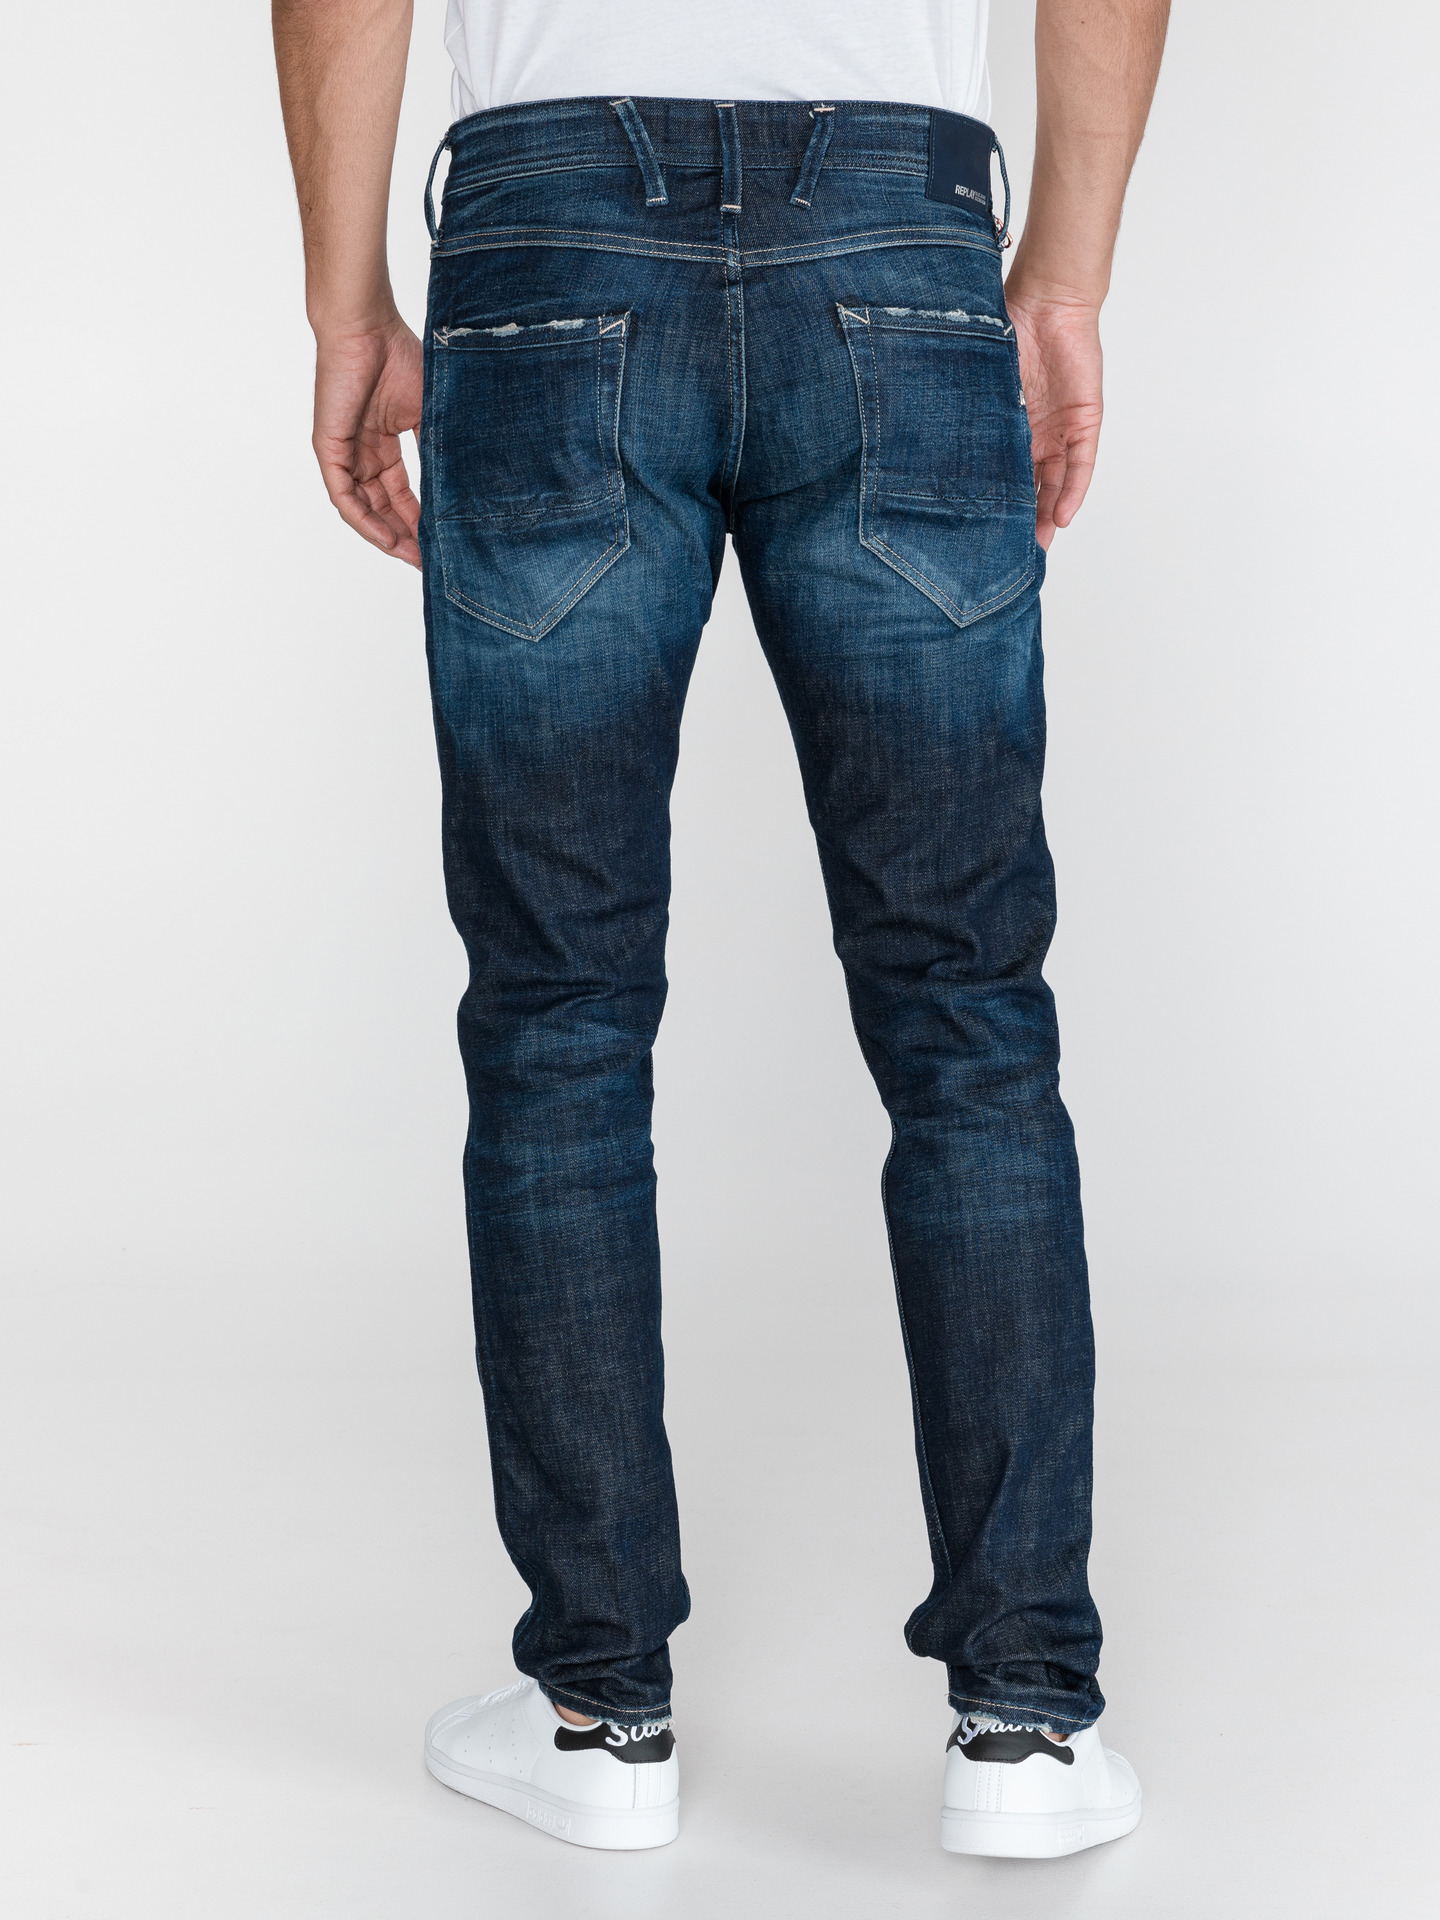 Anbass Ice Blast Jeans Replay (2)